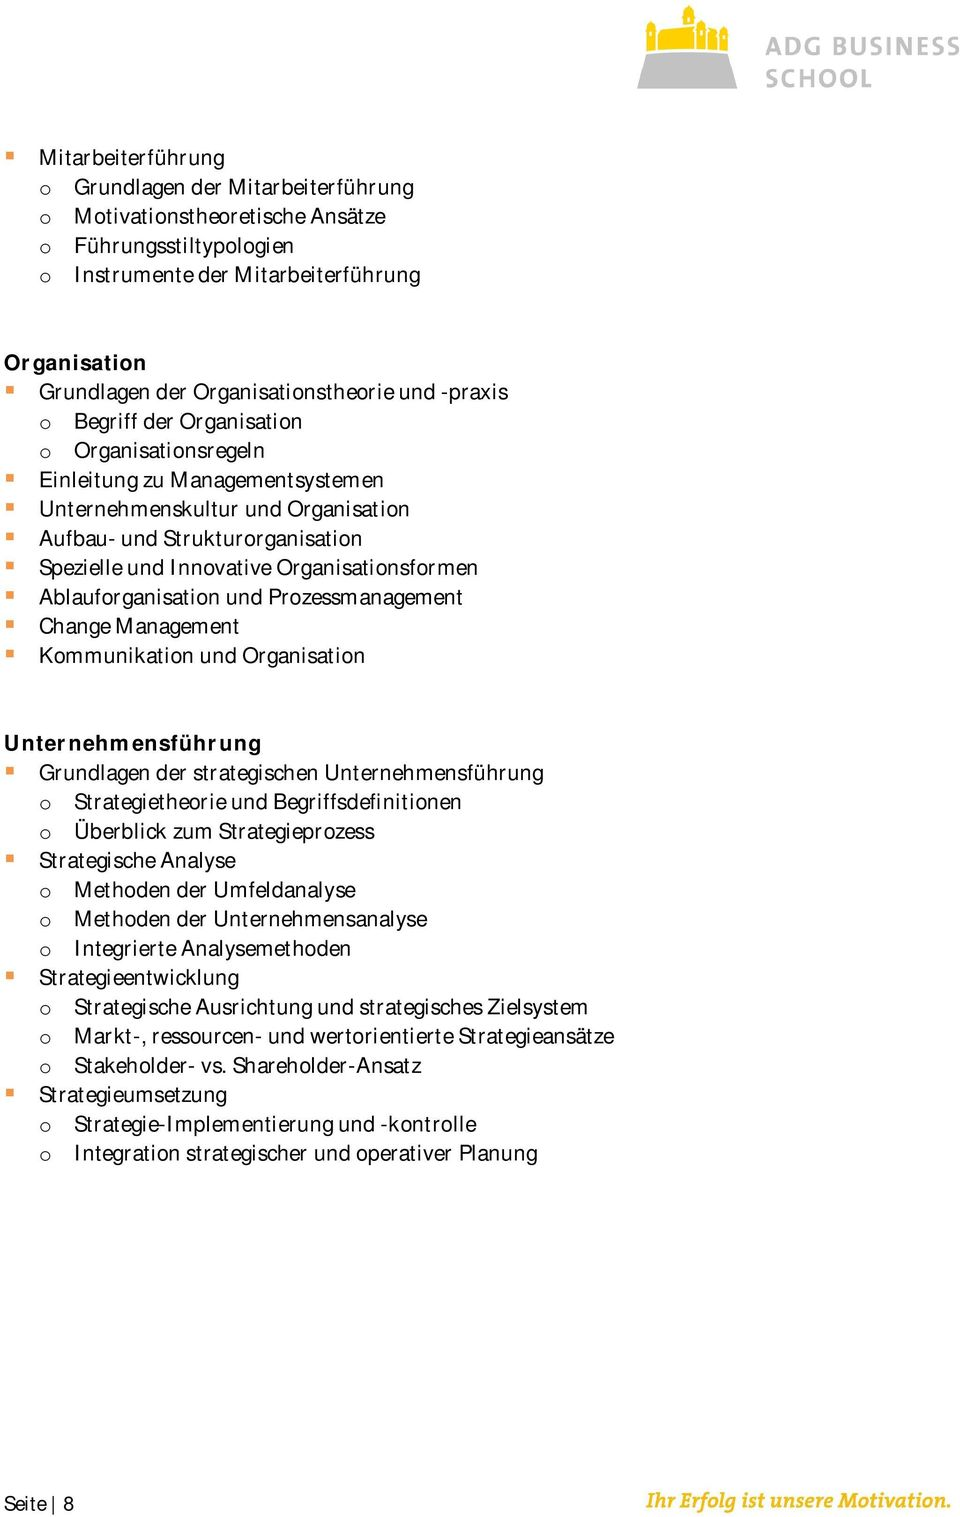 Organisationsformen Ablauforganisation und Prozessmanagement Change Management Kommunikation und Organisation Unternehmensführung Grundlagen der strategischen Unternehmensführung o Strategietheorie